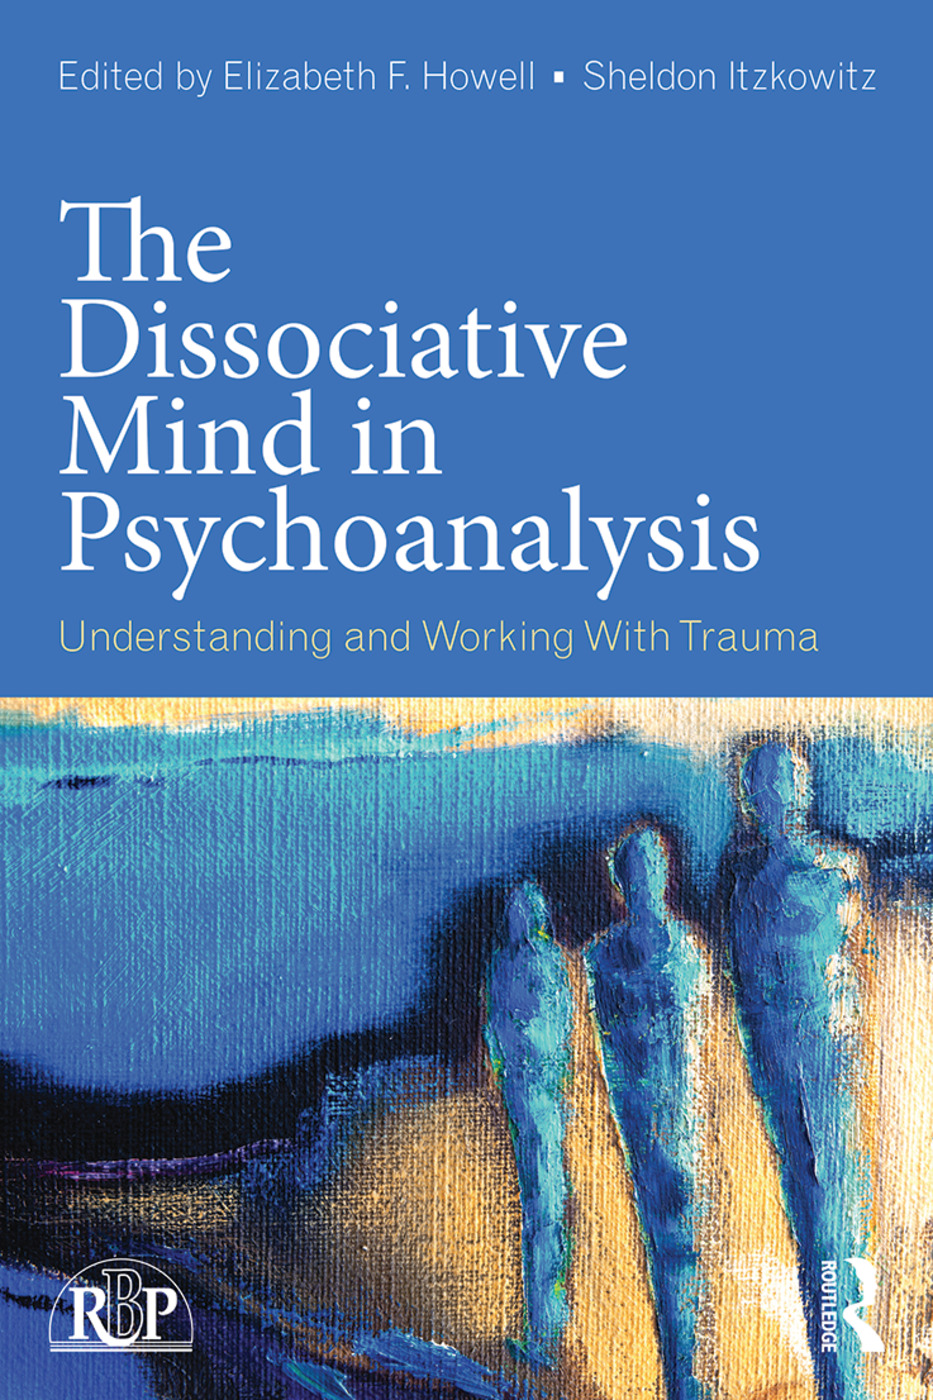 The Dissociative Mind in Psychoanalysis: Understanding and Working With Trauma book cover